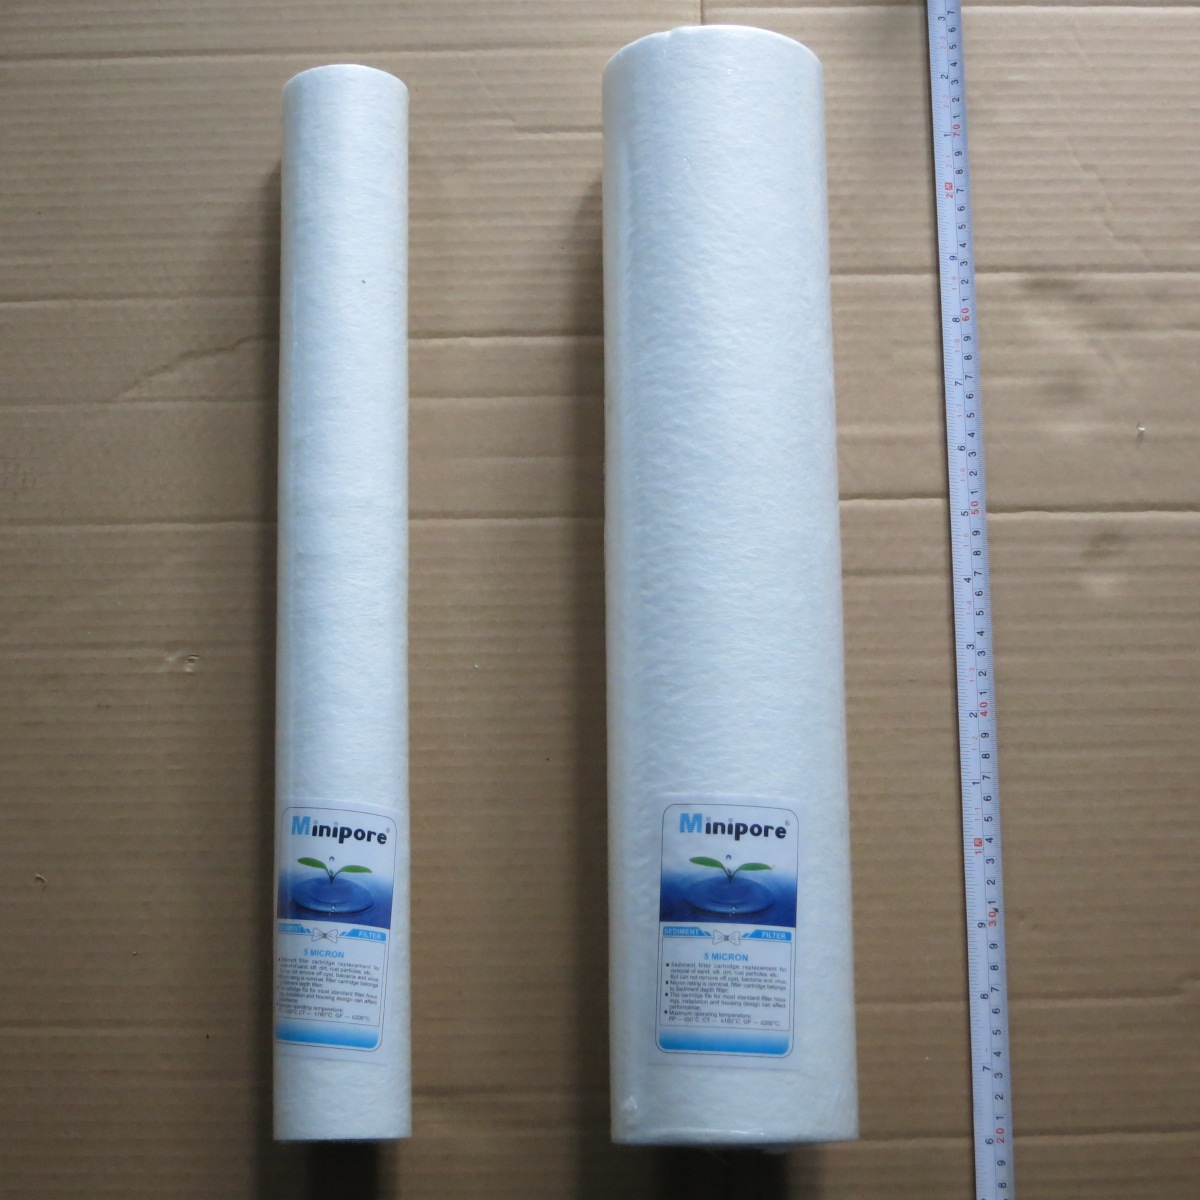 Factory hele koop filter pp sediment filter 1/5/10/20/50 Micro water filter namen